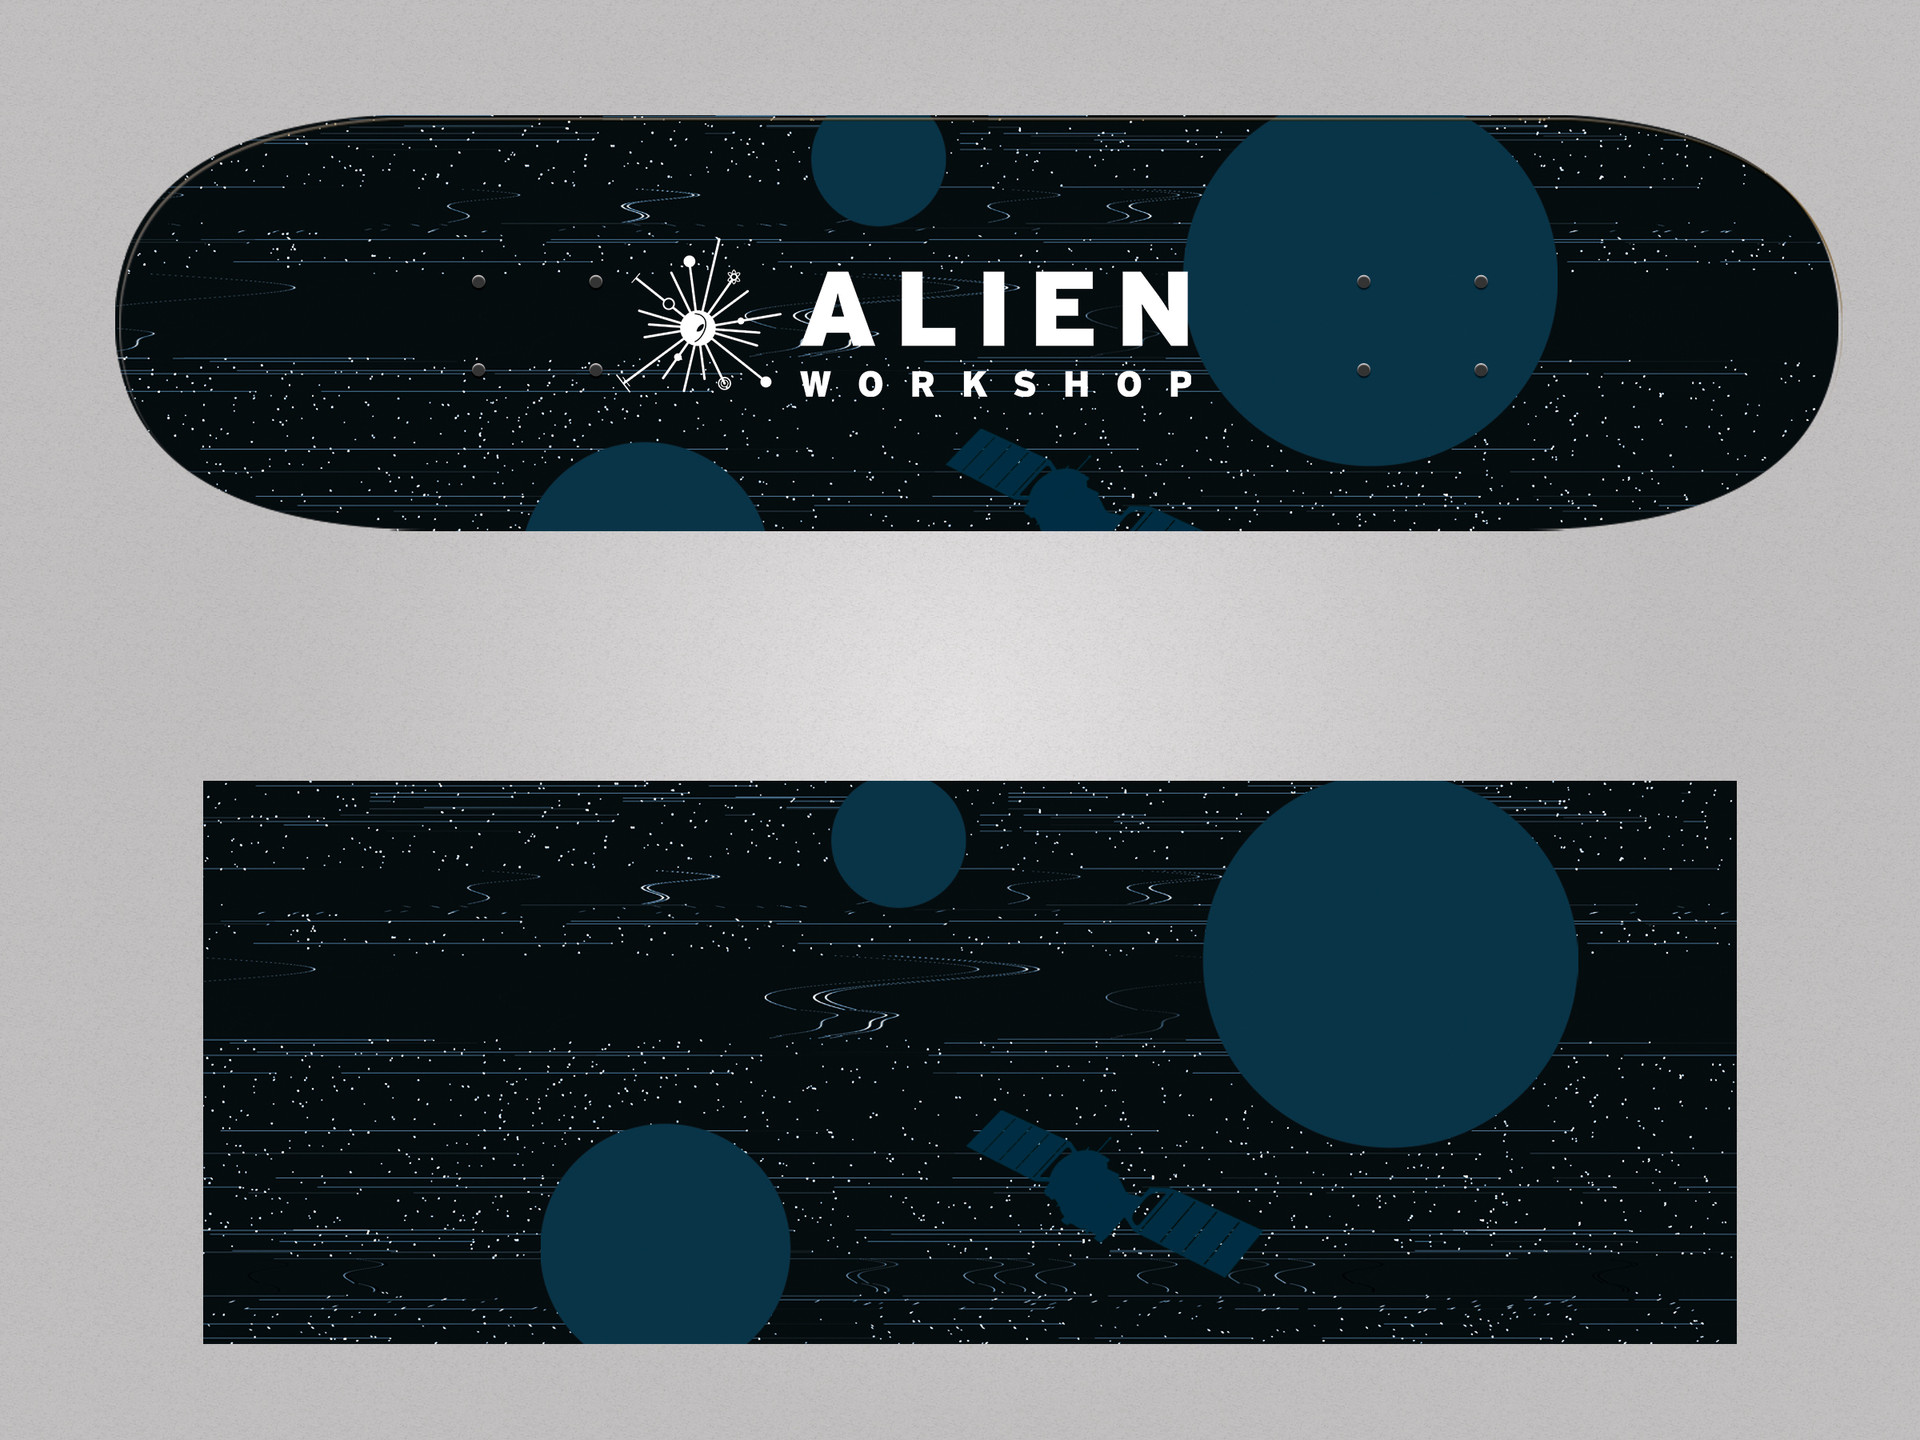 Alien Workshop Board